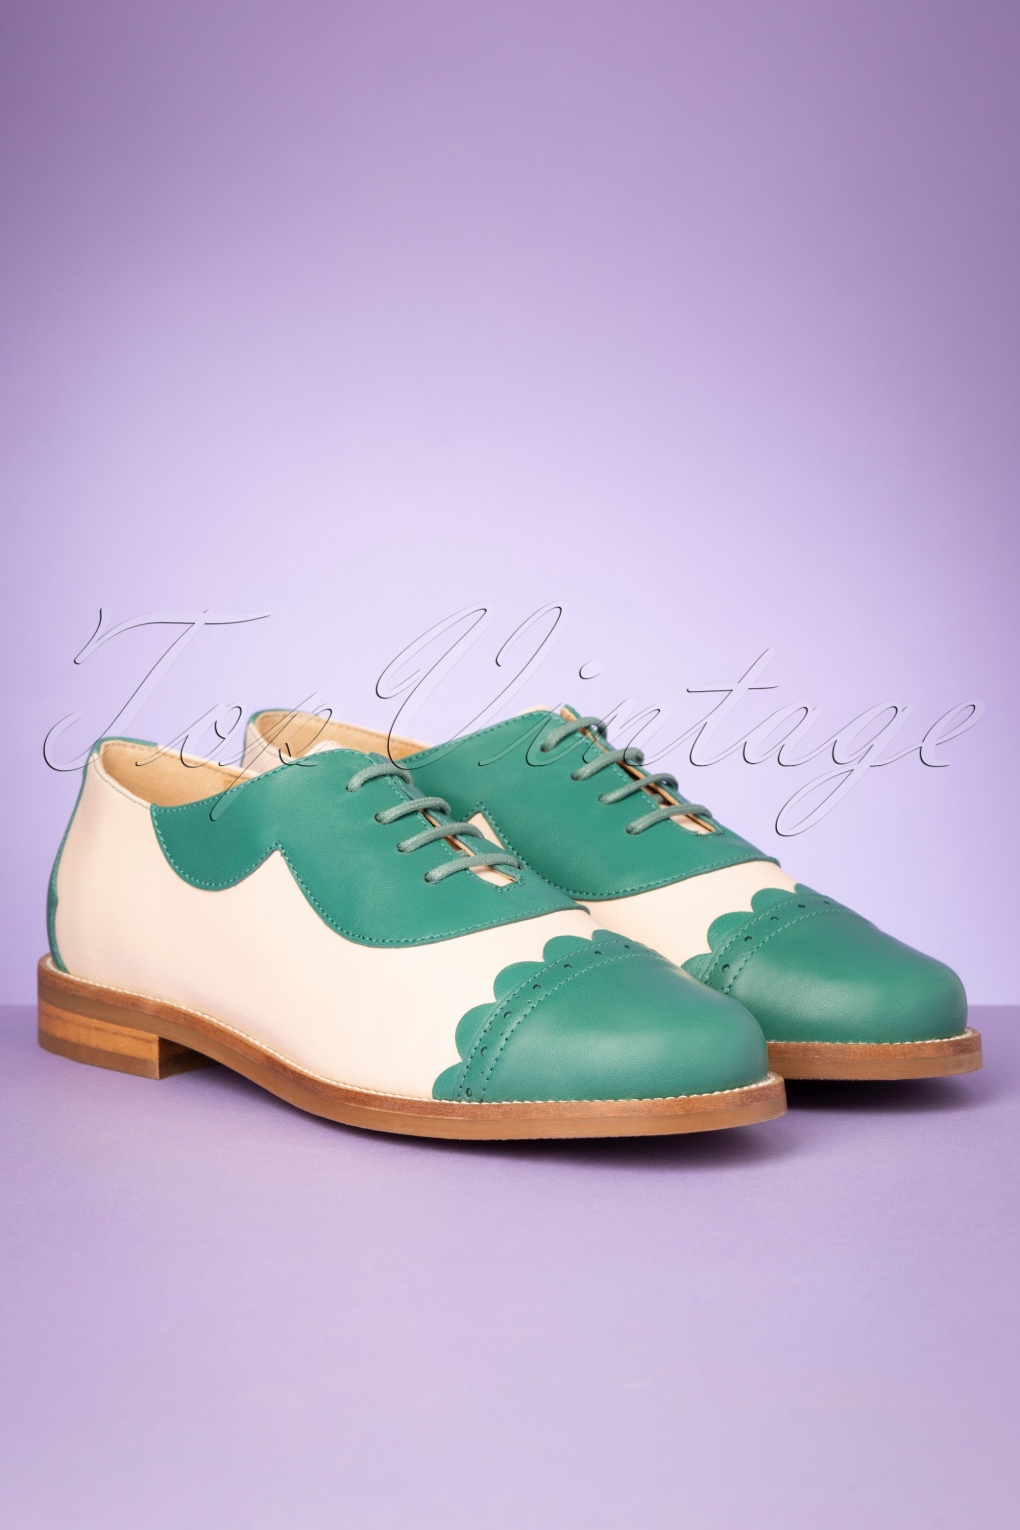 60s Dresses & 60s Style Dresses UK 60s Mika Oxford Shoes in Turquoise and Cream £83.72 AT vintagedancer.com